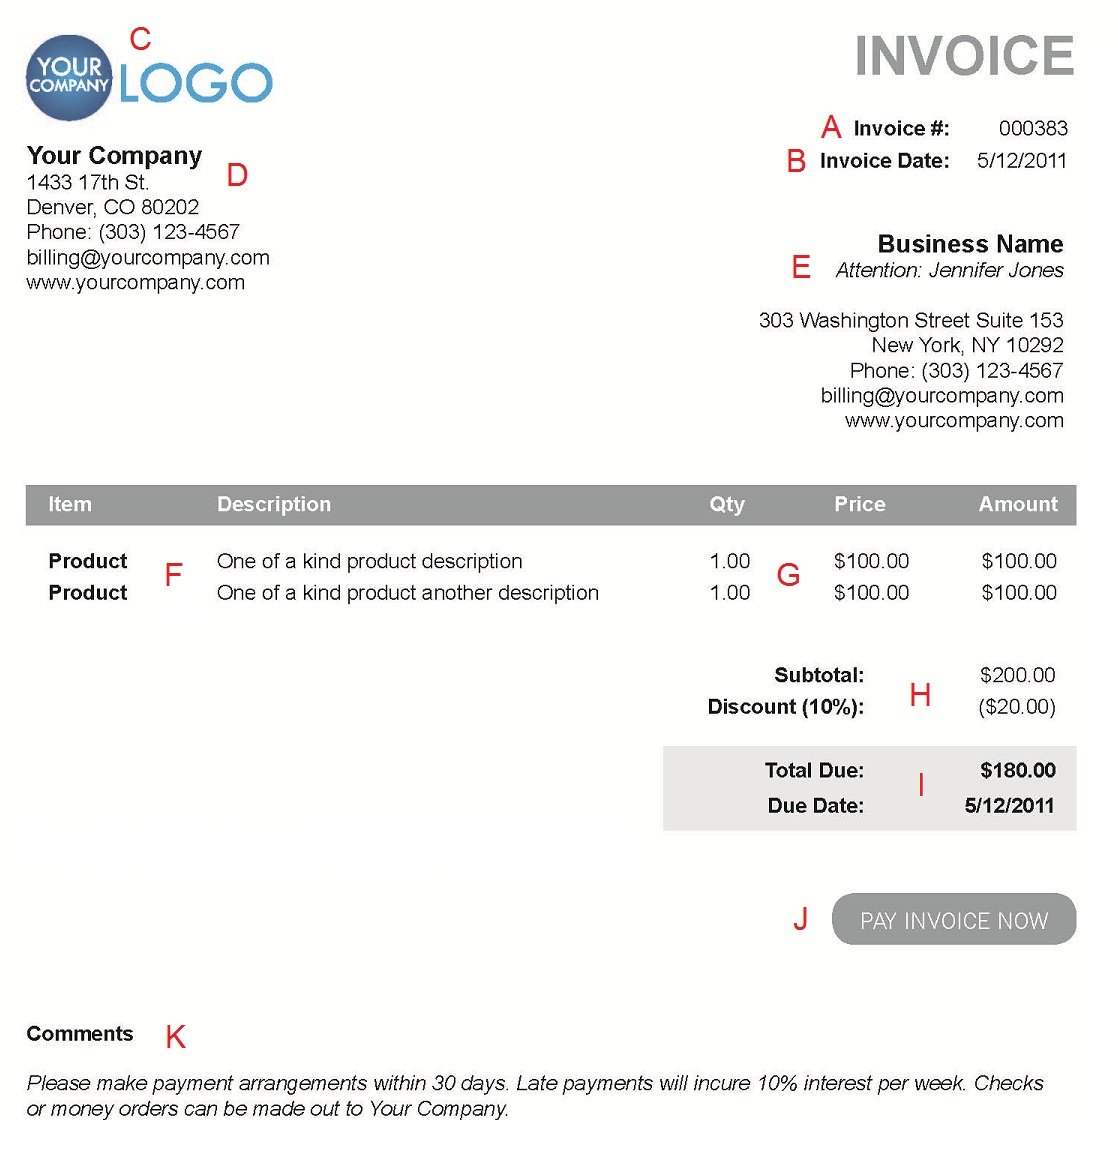 Pigbrotherus  Outstanding The  Different Sections Of An Electronic Payment Invoice With Fascinating A  With Awesome Stripe Send Invoice Also Construction Invoice Sample In Addition Simple Invoice Software And Free Invoicing Software For Small Business As Well As Invoice Bill Additionally Download Invoice From Paysimplecom With Pigbrotherus  Fascinating The  Different Sections Of An Electronic Payment Invoice With Awesome A  And Outstanding Stripe Send Invoice Also Construction Invoice Sample In Addition Simple Invoice Software From Paysimplecom